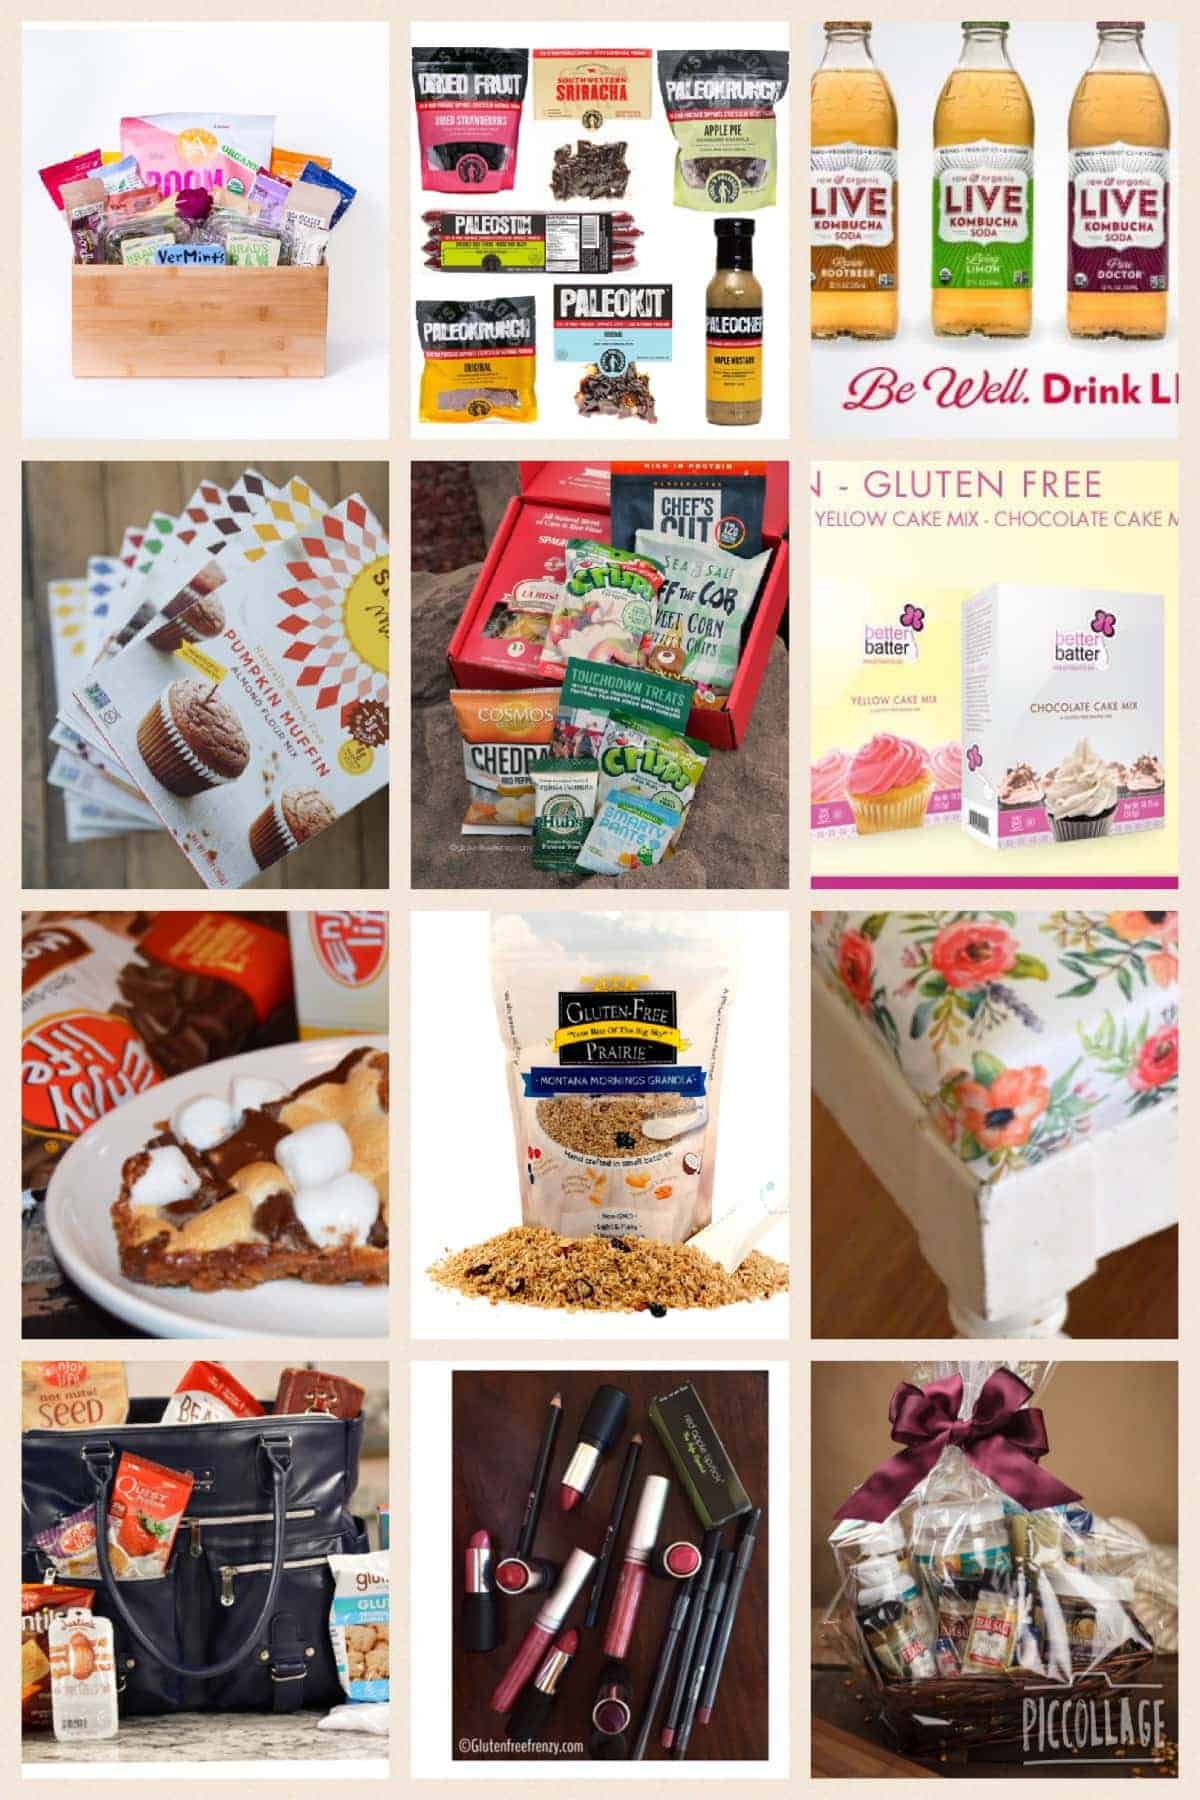 25 Days of Gluten-Free Giveaways™ 2015